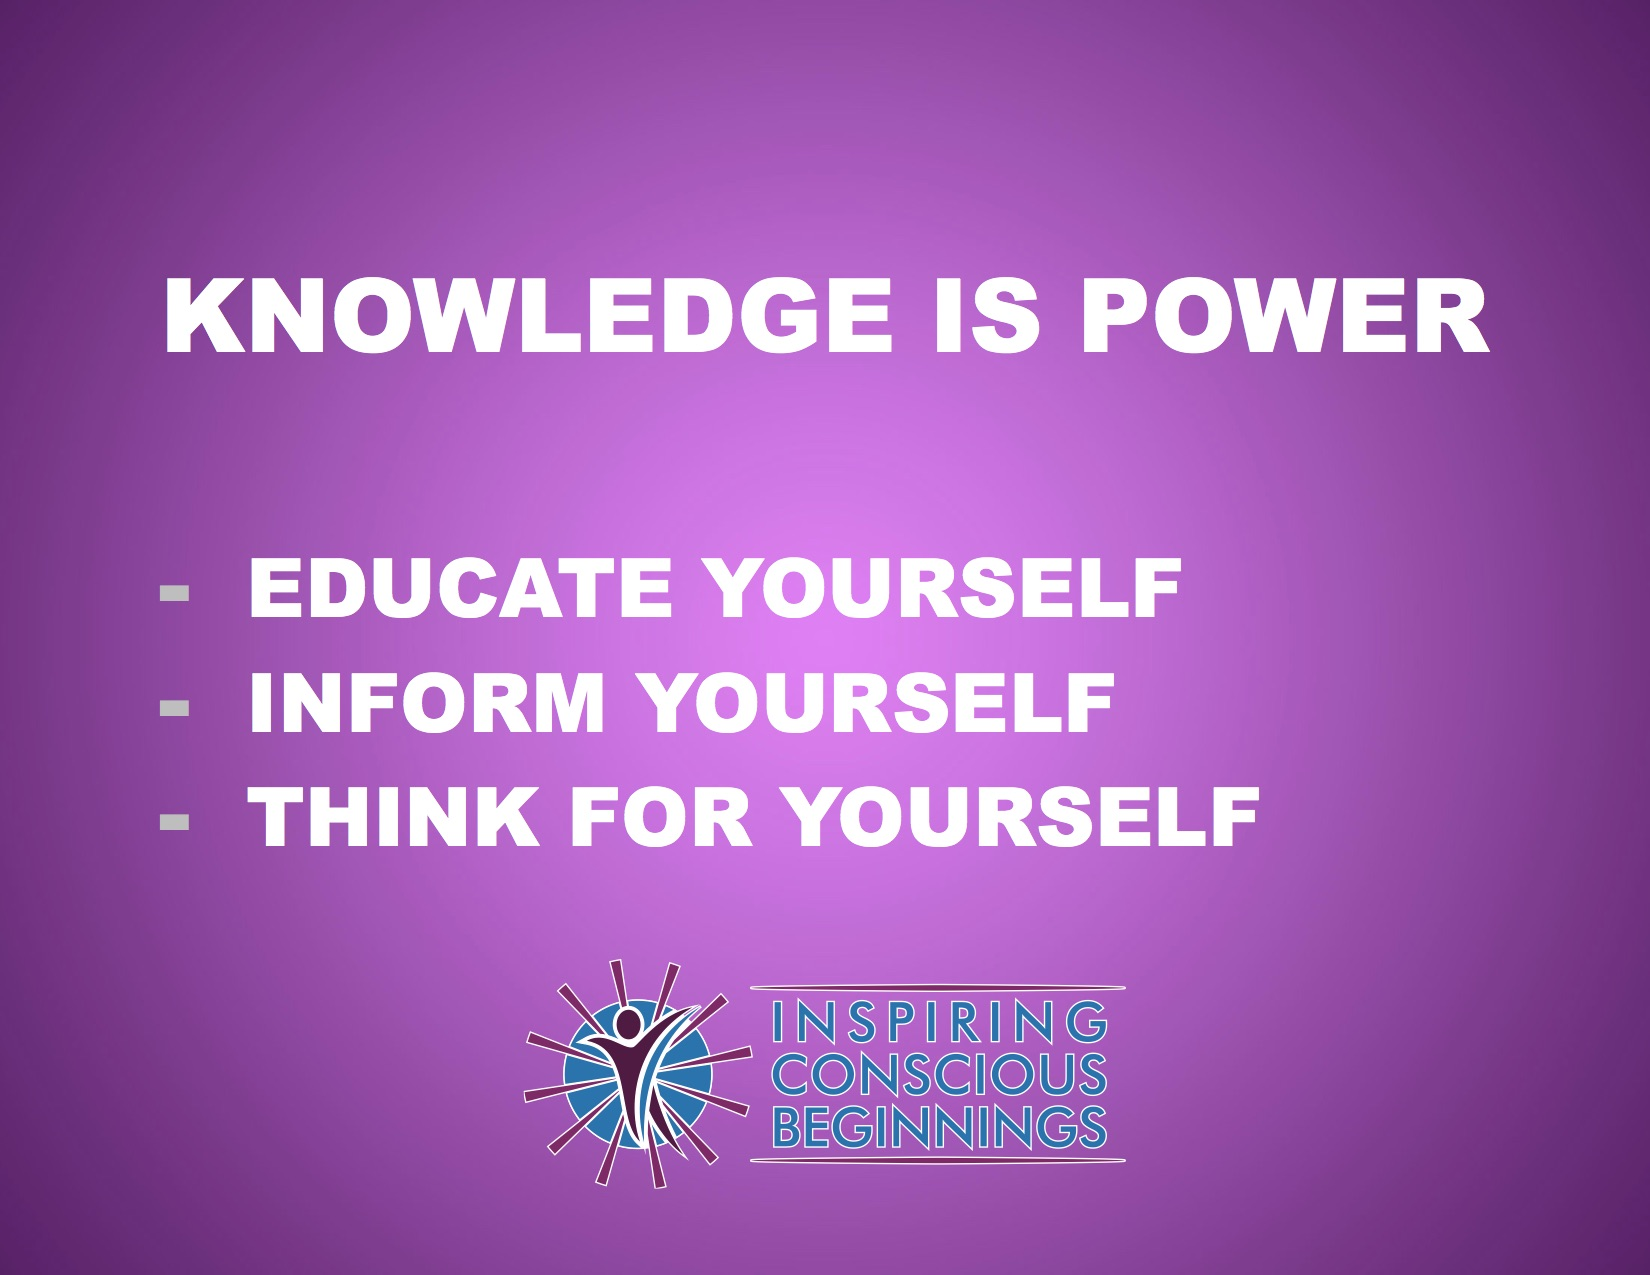 knowledge is power inspiring